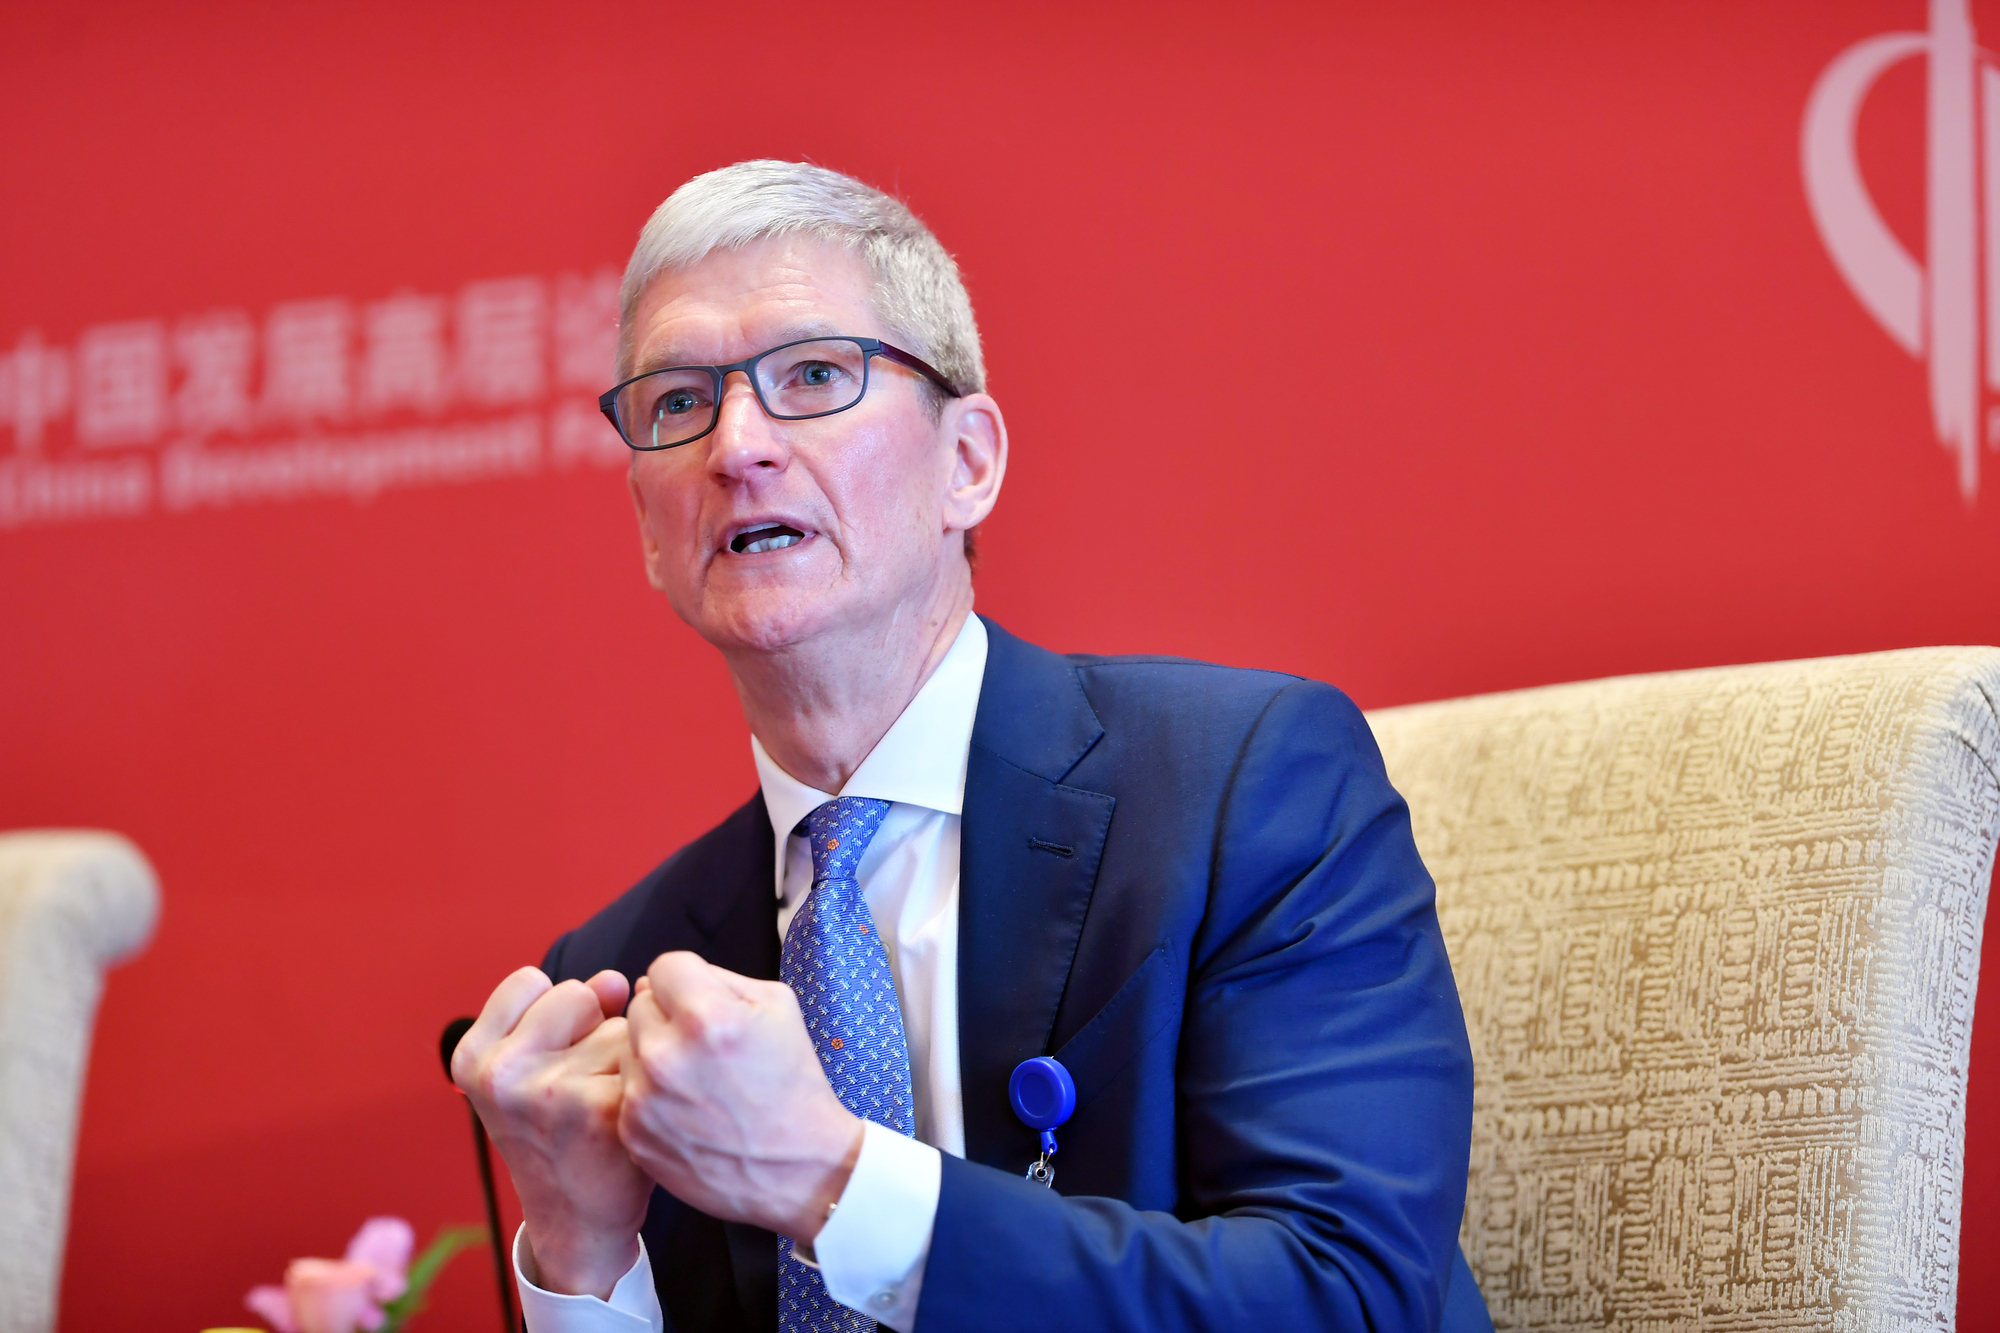 Apple-Chef Tim Cook wird Milliardär